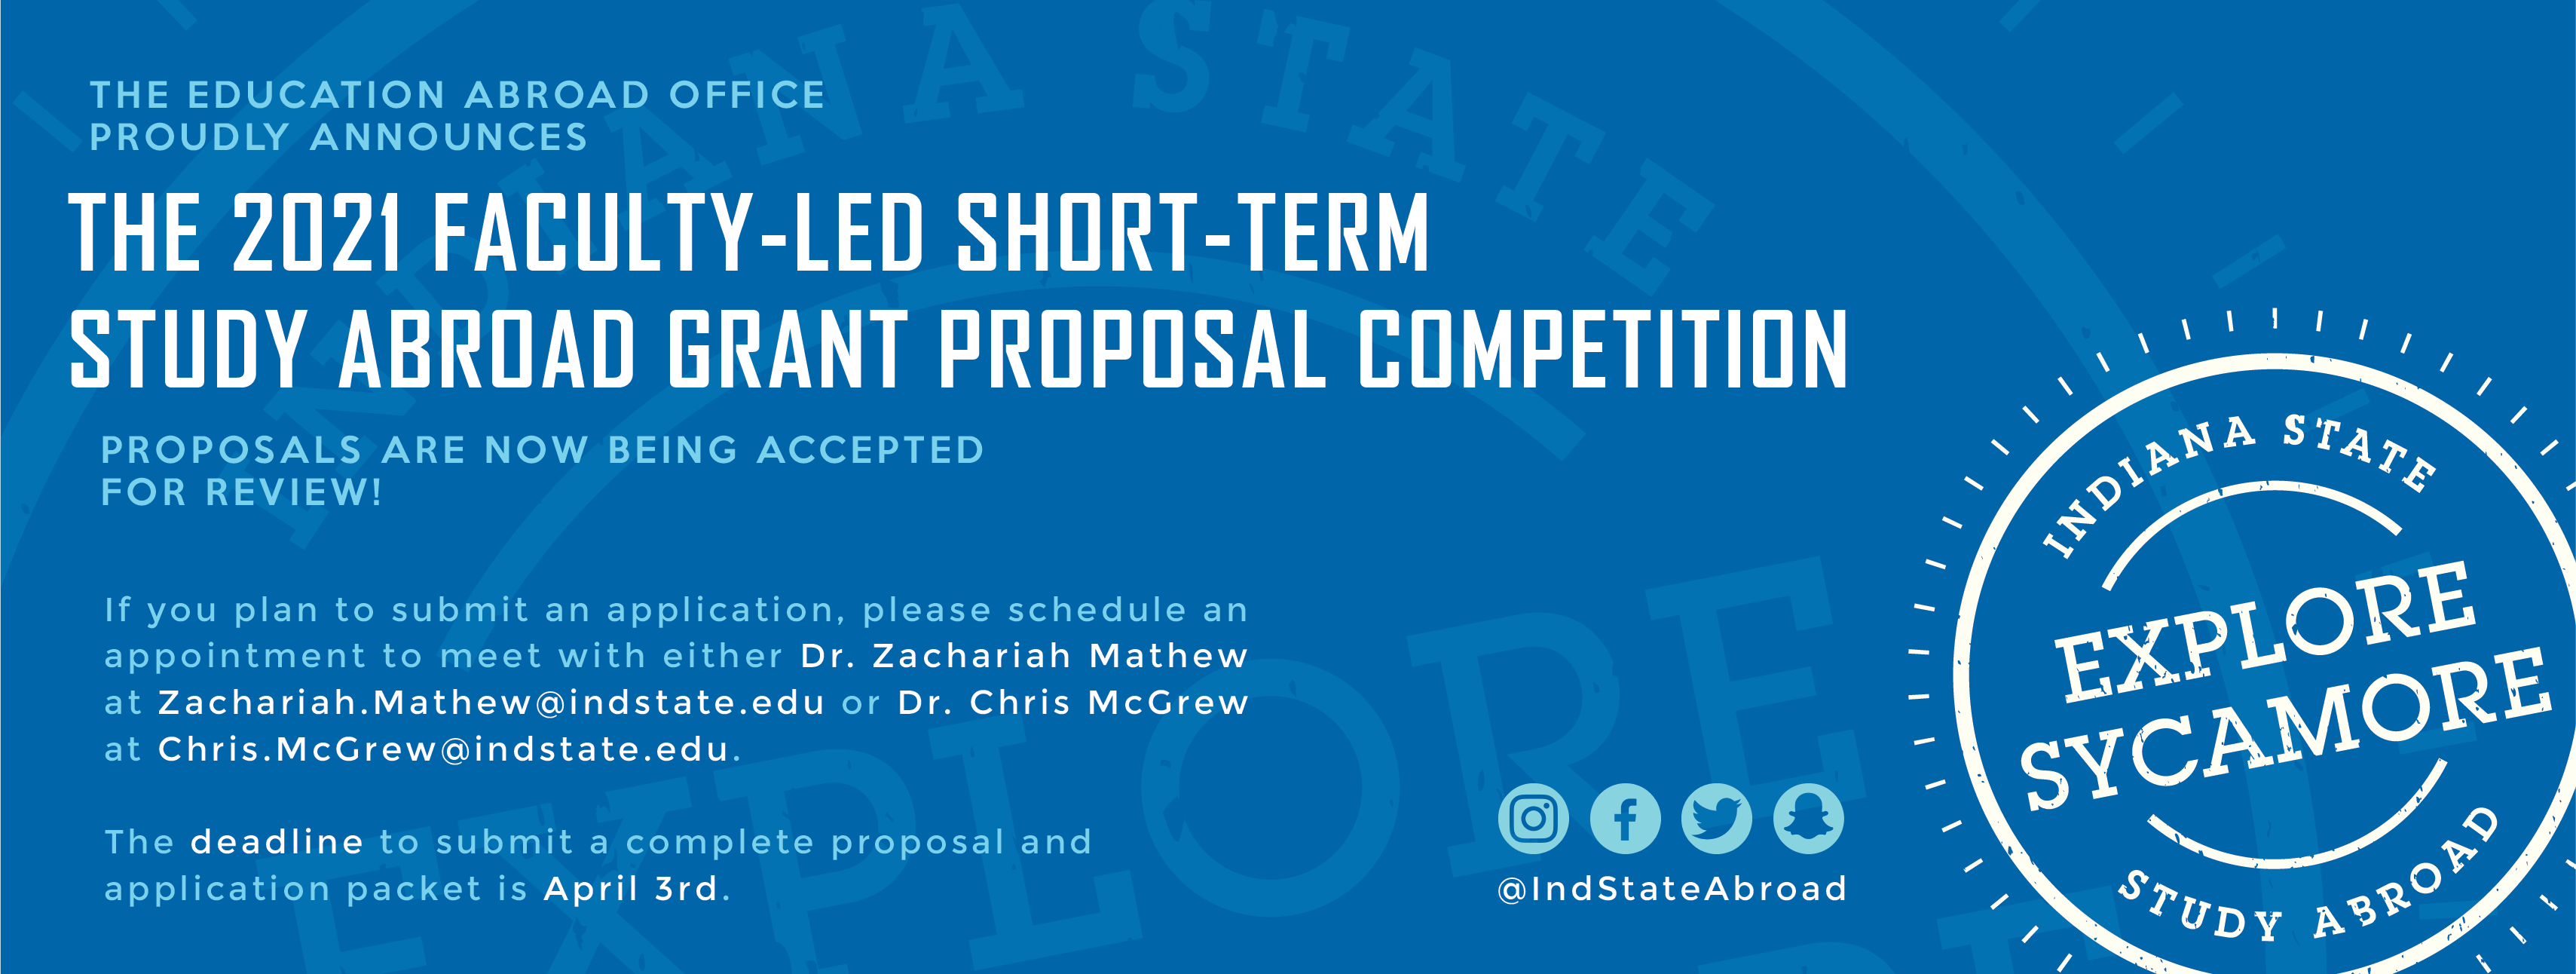 2021 Faculty-Led Grant Proposal Competition